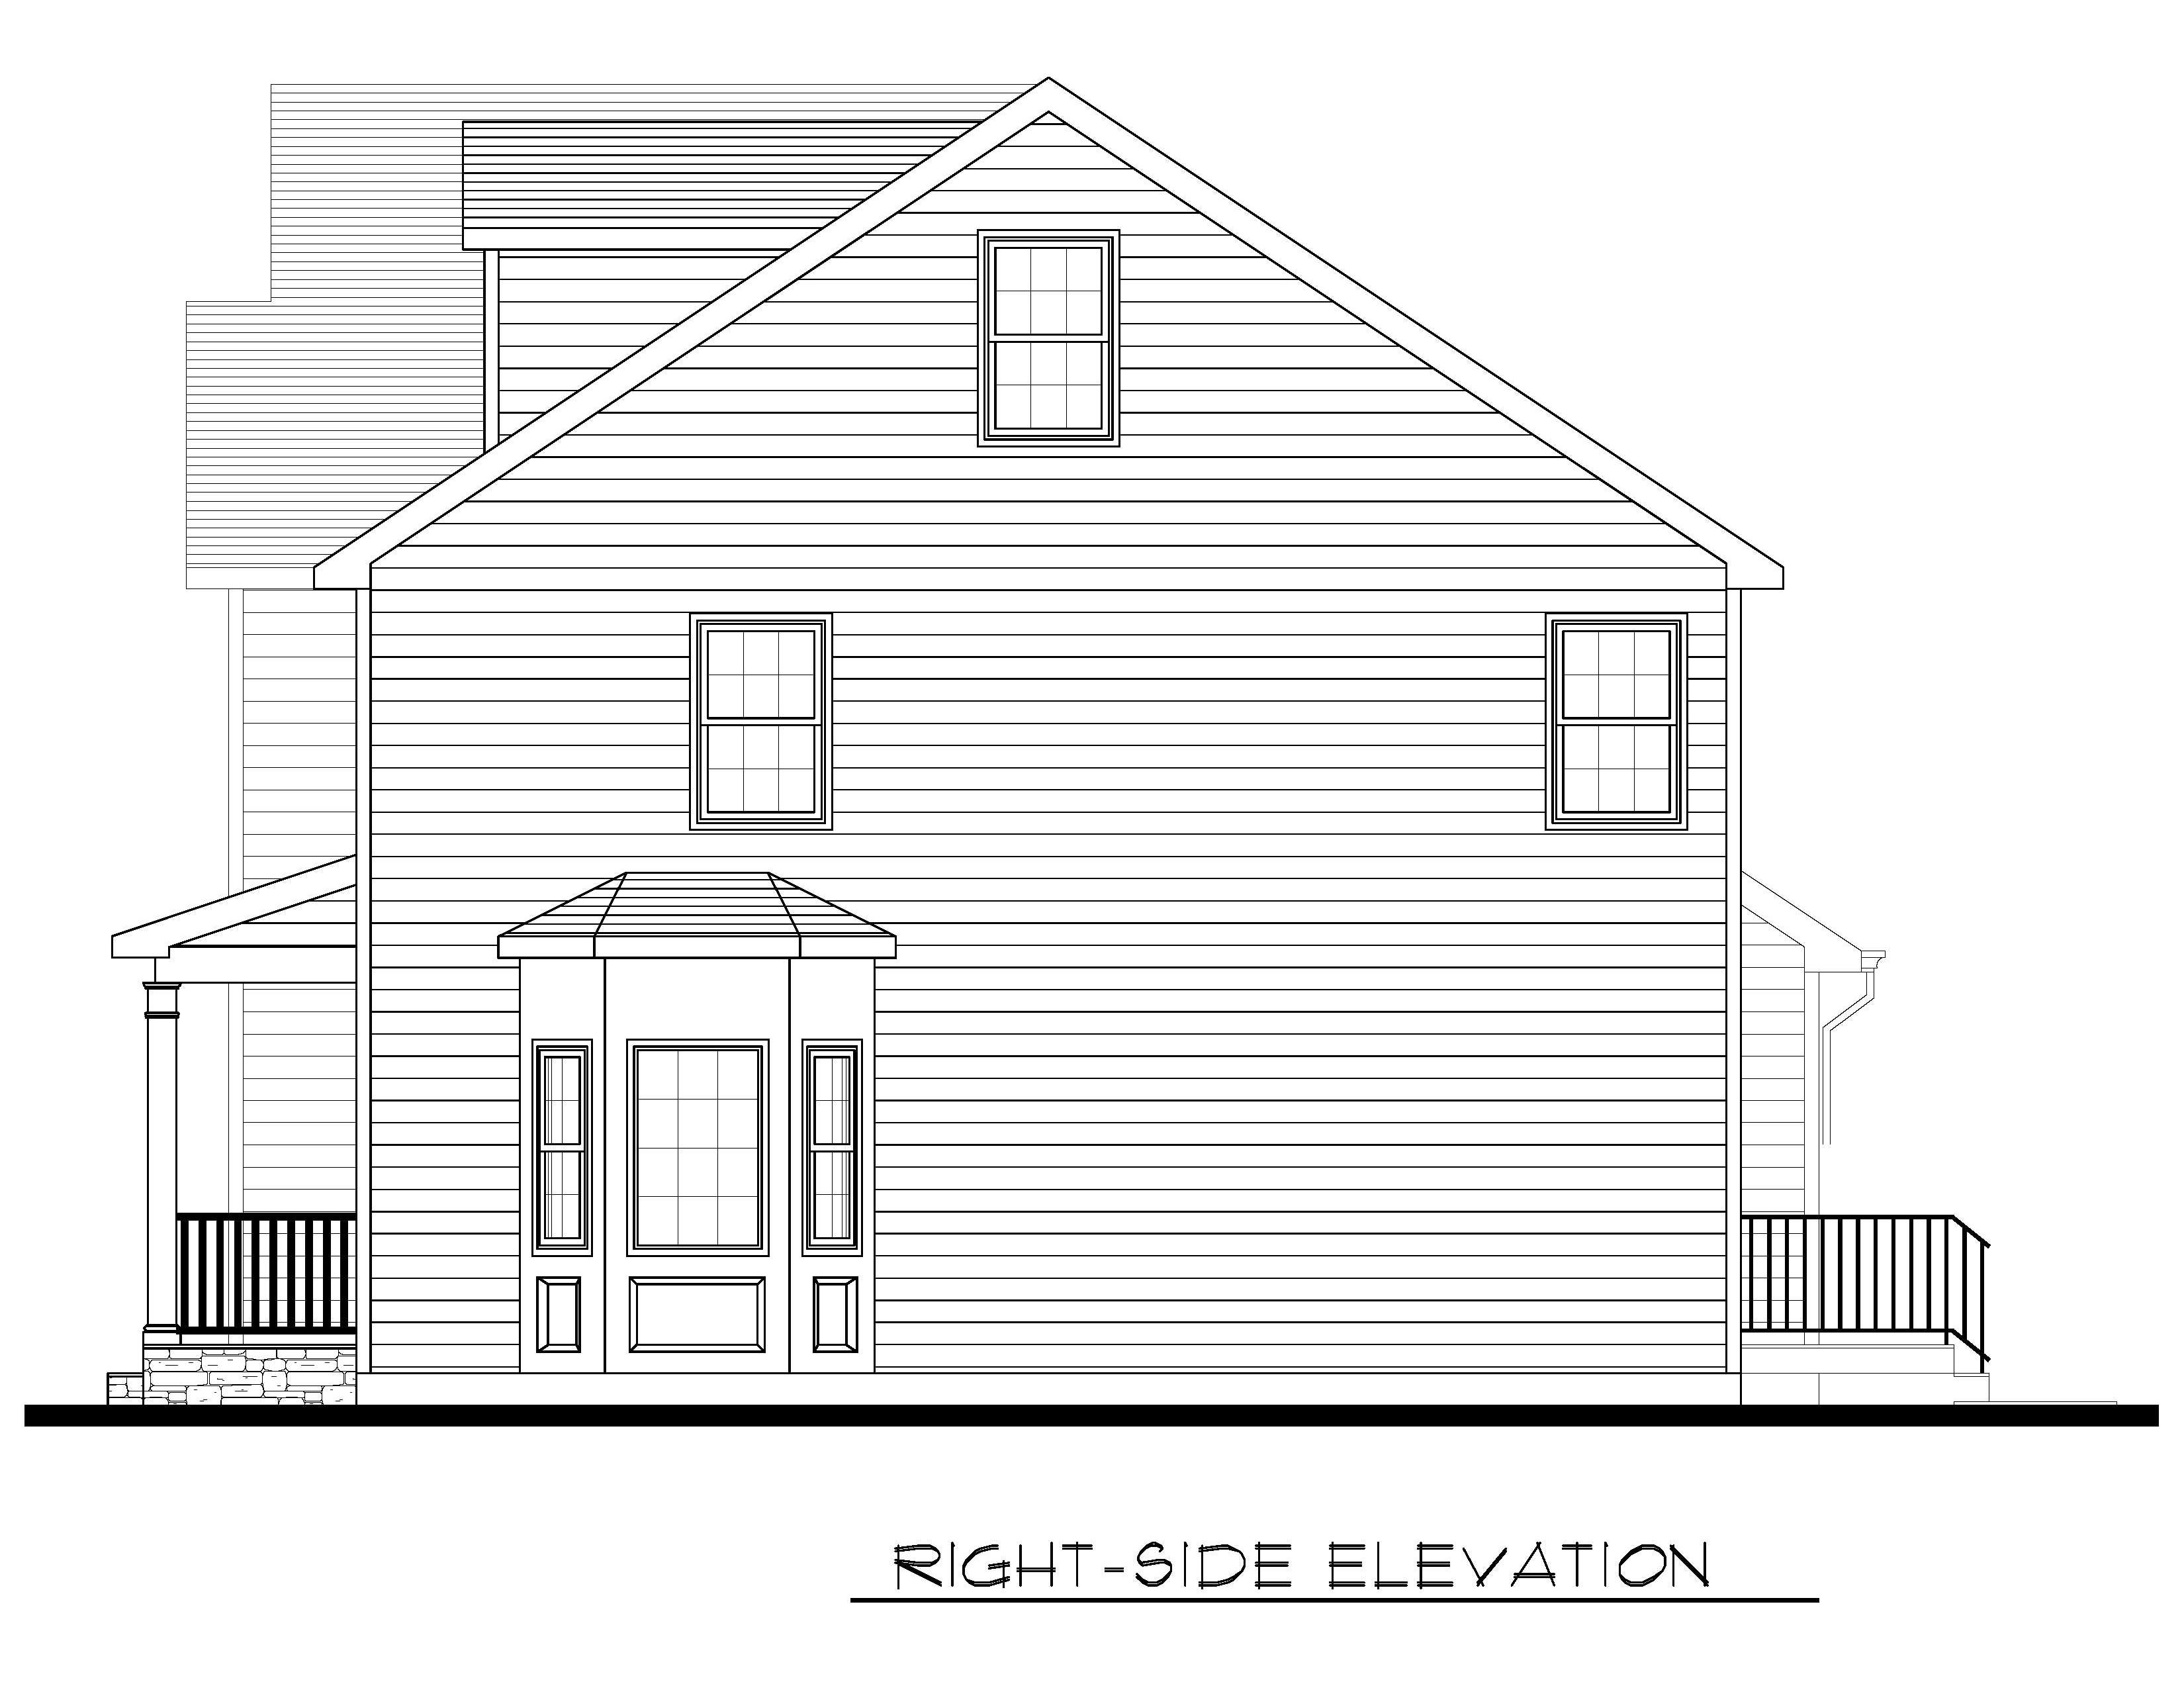 Right Side Elevation-08-31-2020